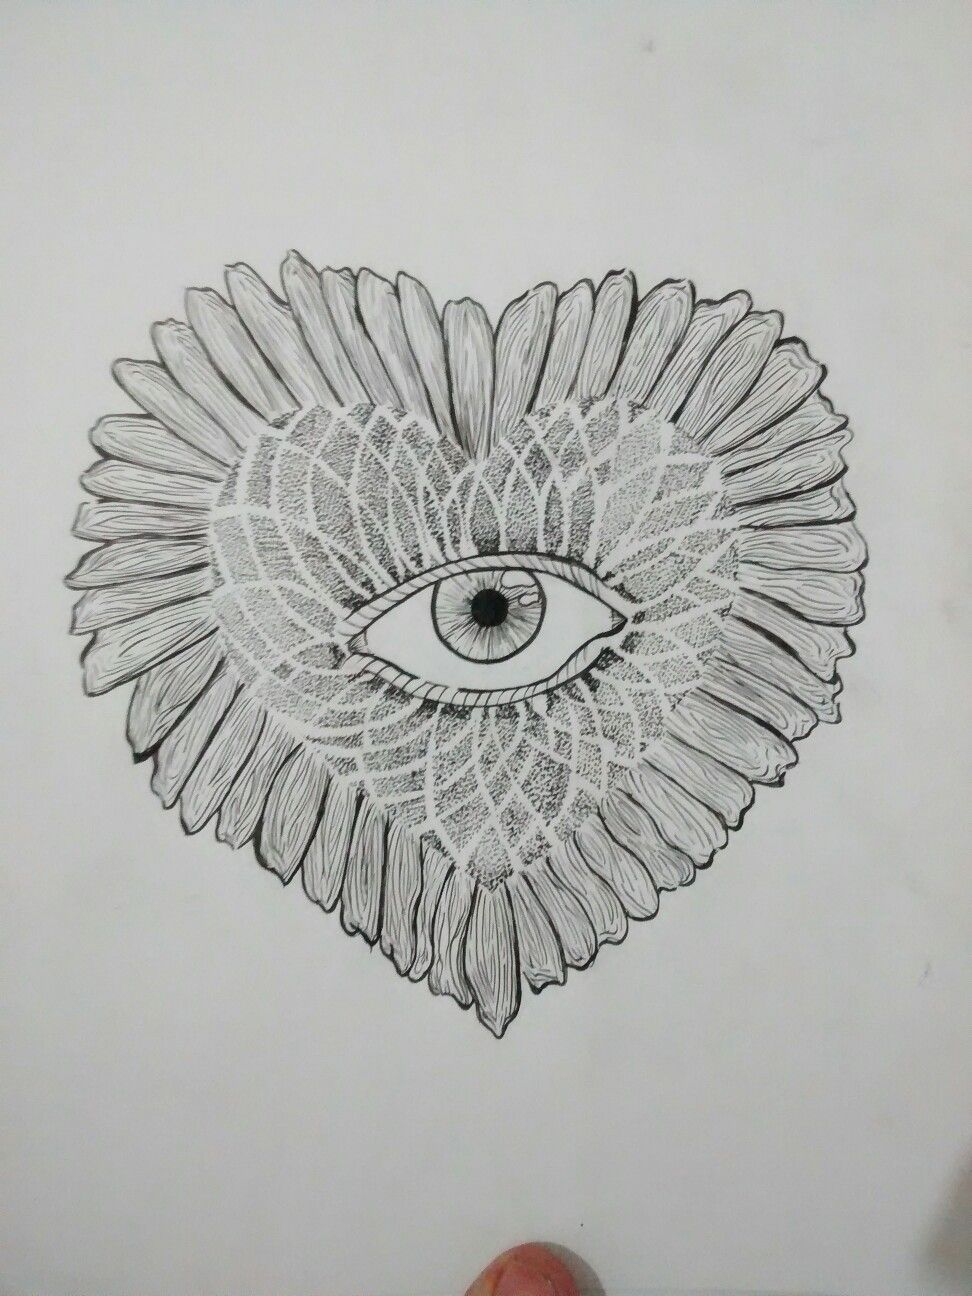 Sunflowers, hearts and dots. #dotwork #sunflower #tattooaprentice #eyes #lucasperine #dots